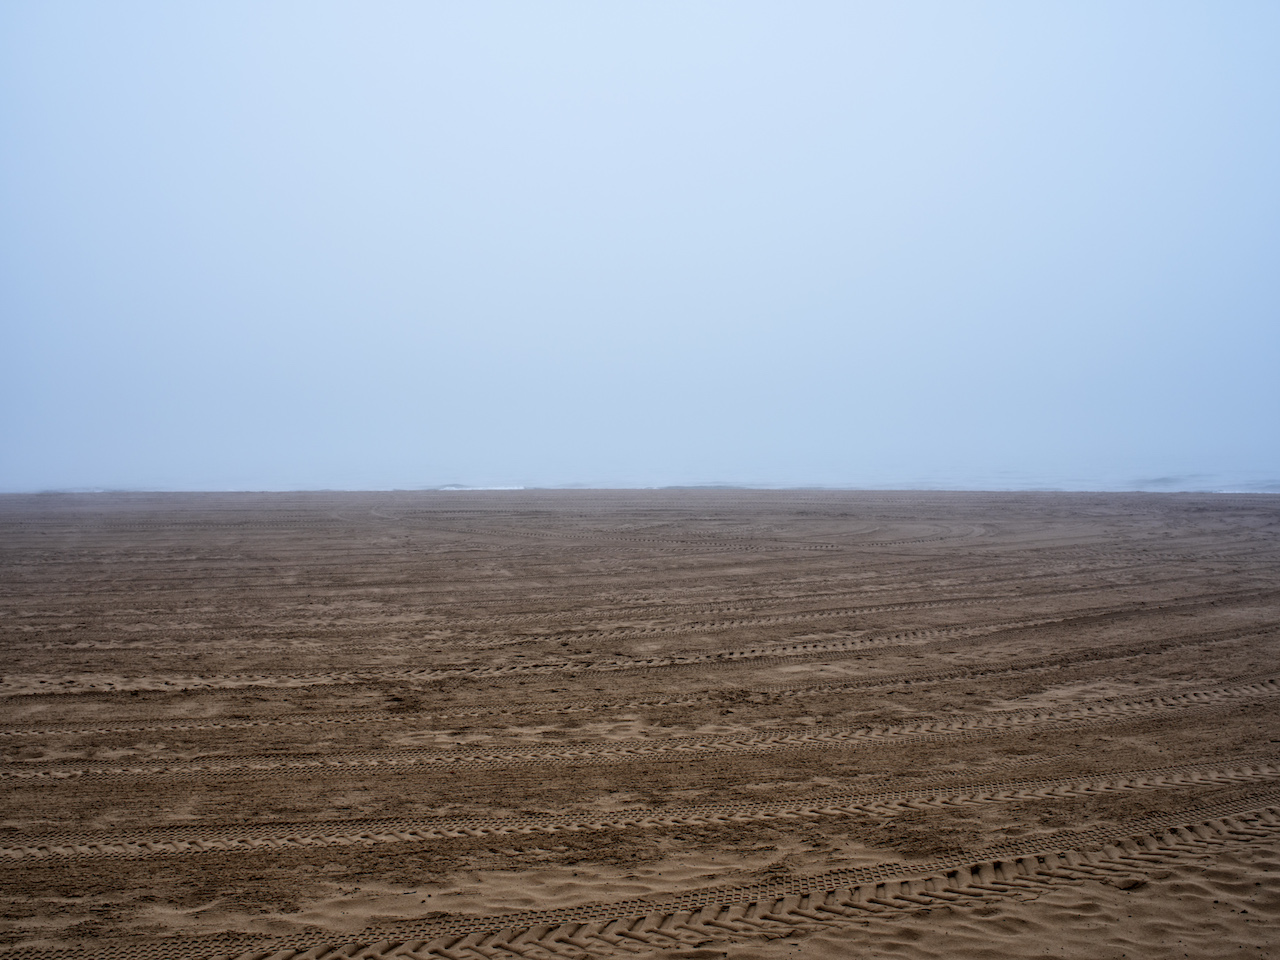 a foggy day with wet sands on Lake Michigan, with tracks of various machines and people, from The Shore series by Lincoln Schatz